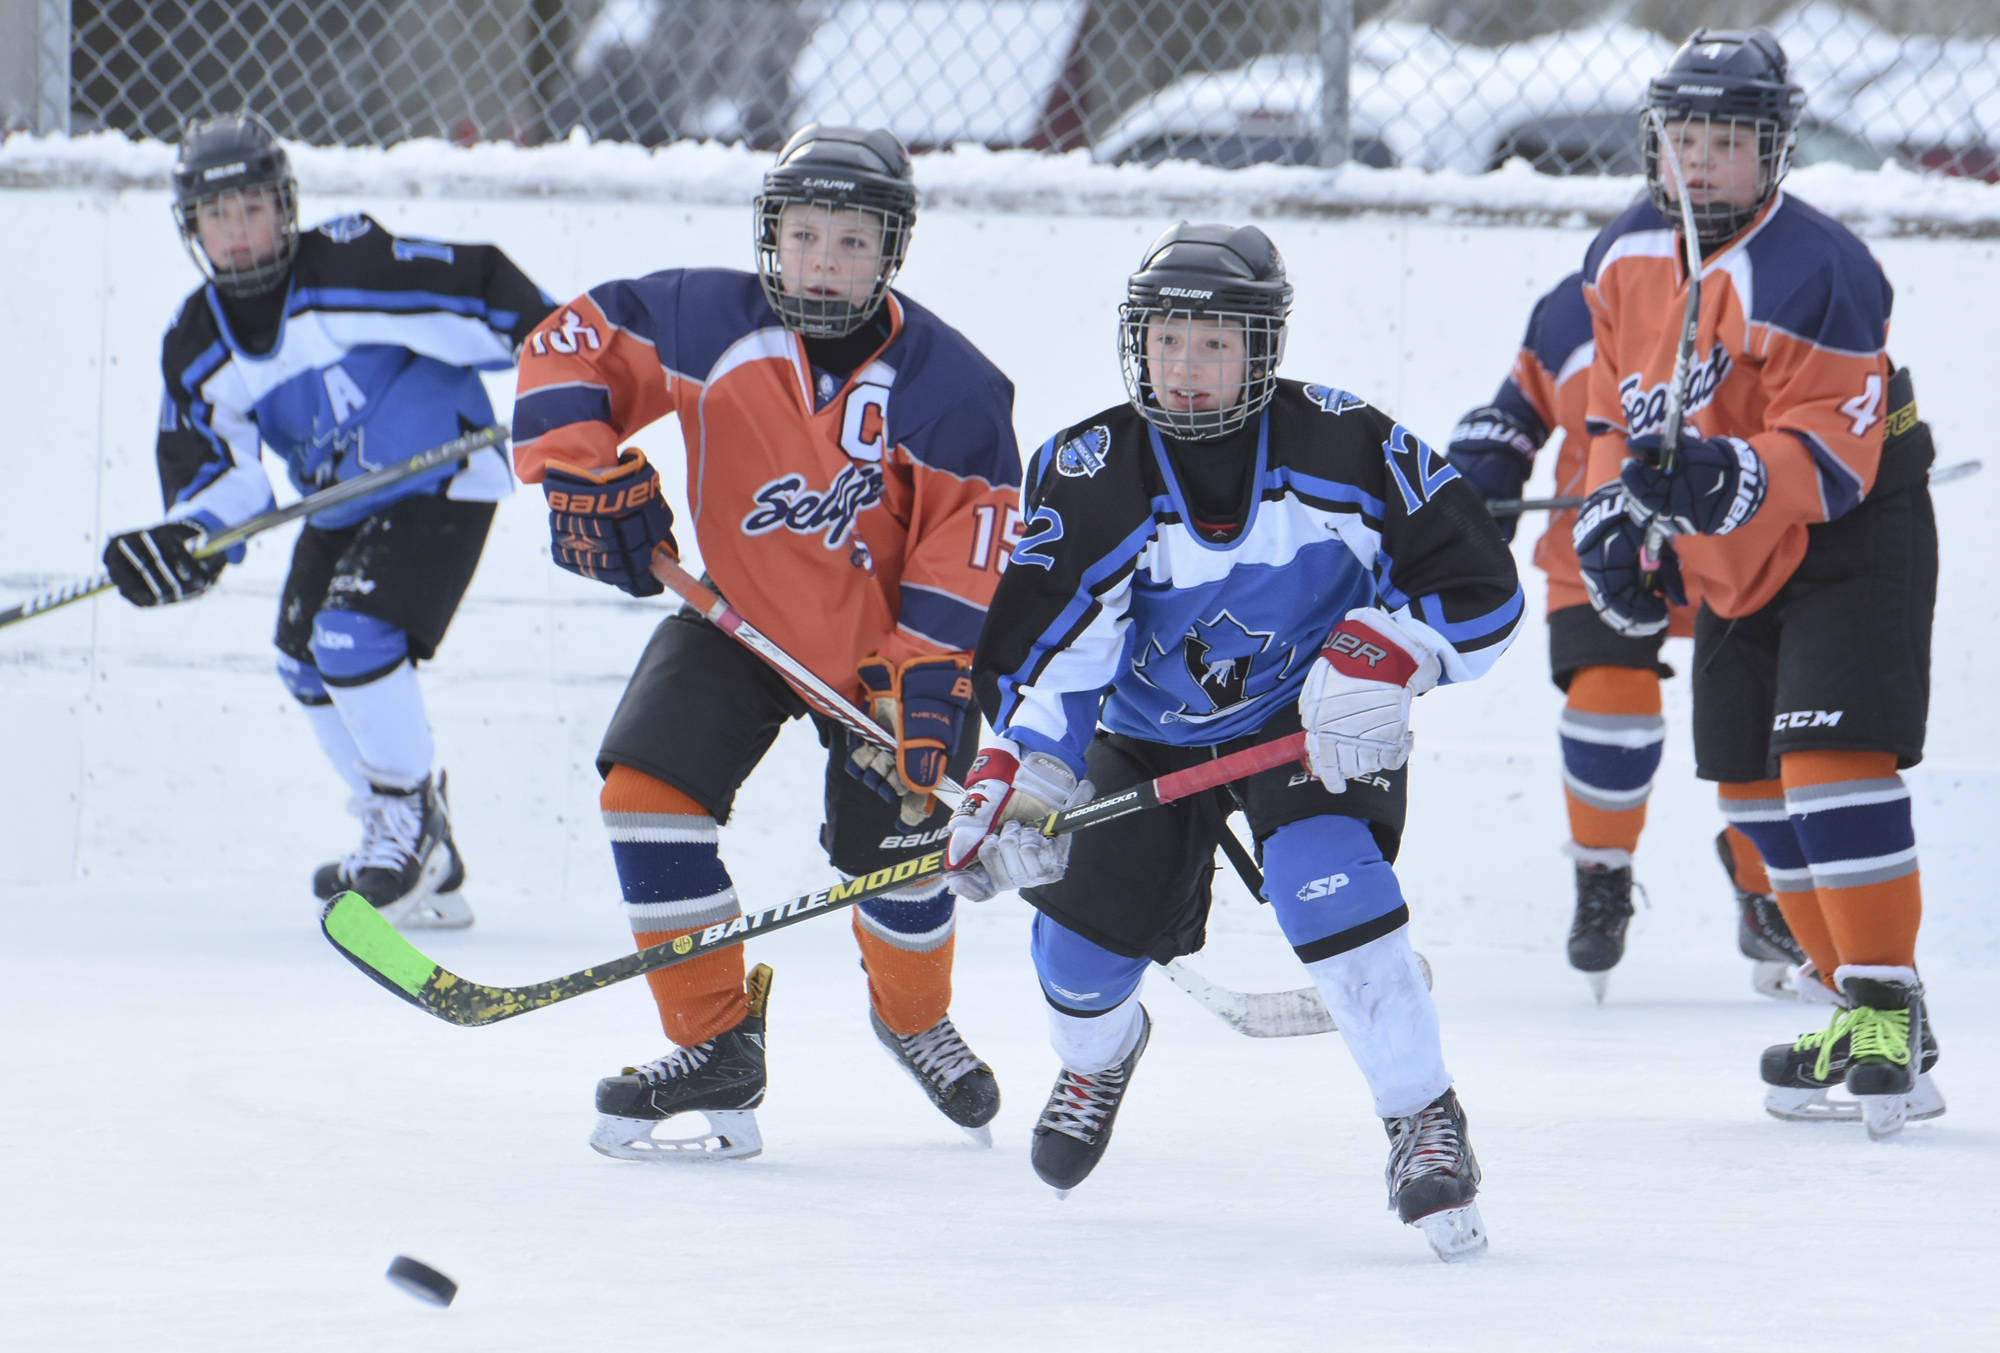 young boys playing hockey